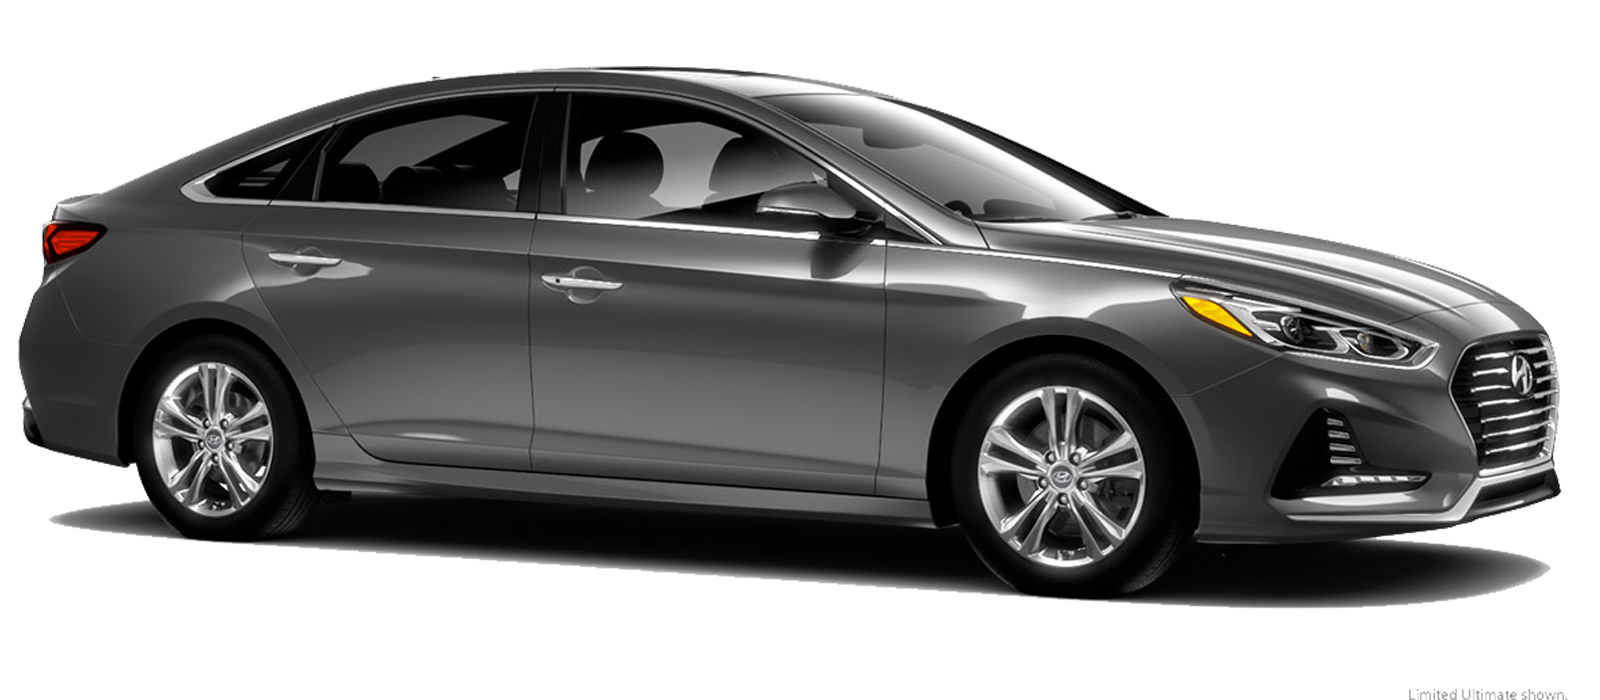 new offers lease black fl sport exterior and hyundai finance orlando deals htm for dealer oem elantra sale